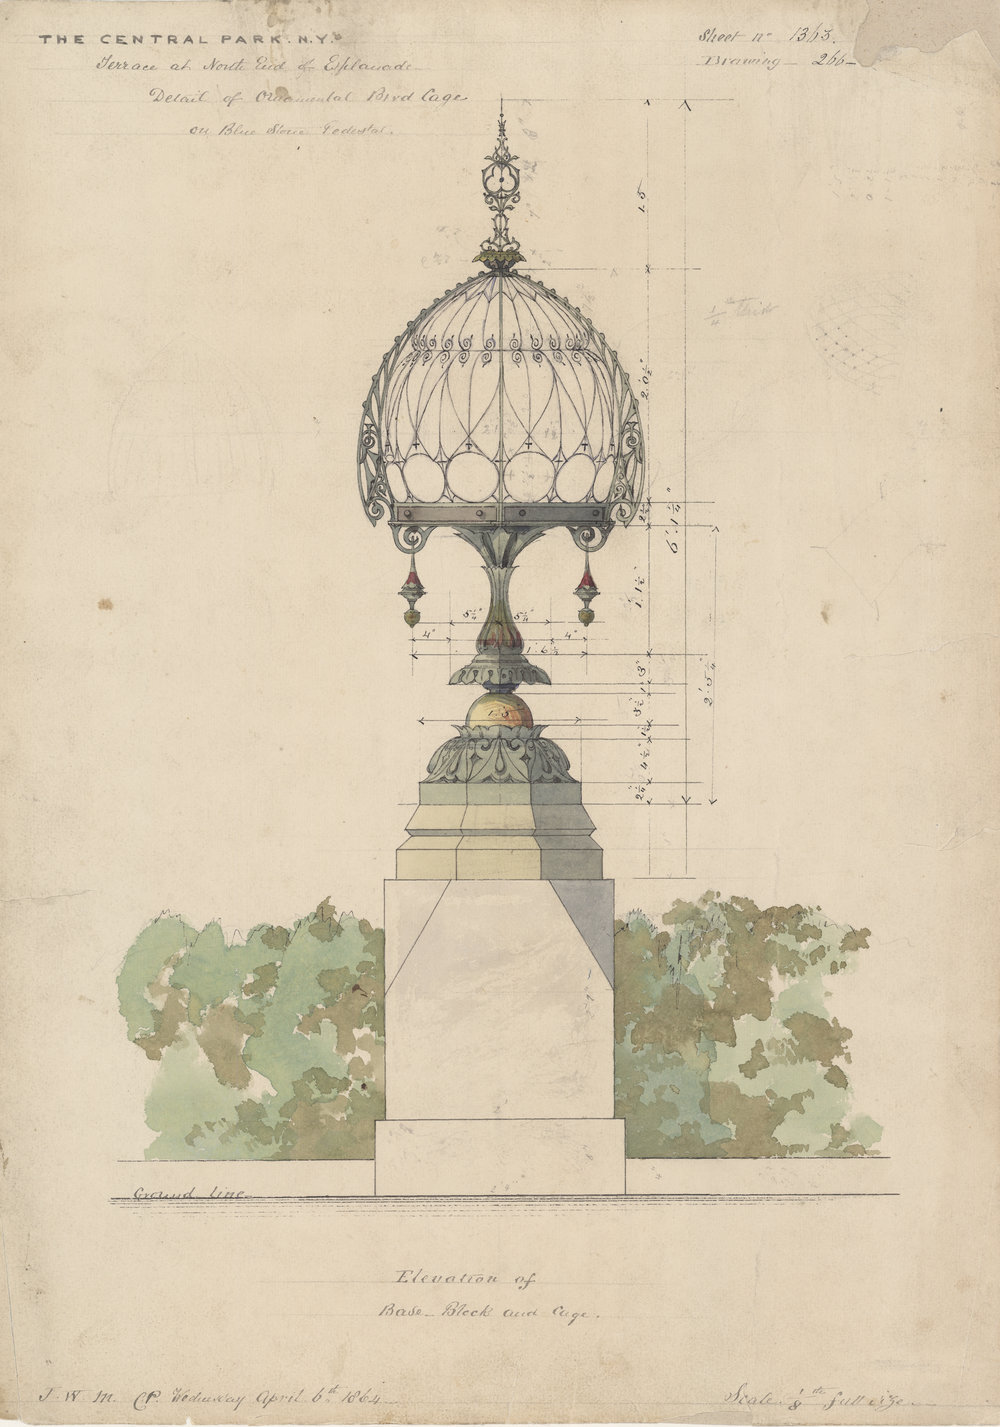 Ornamental birdcage on a blue stone pedestal, 1864.  Attributed to Jacob Wrey Mould, architect.  Black ink and watercolor with pencil on paper, 18 ½ x 13 ¼ inches